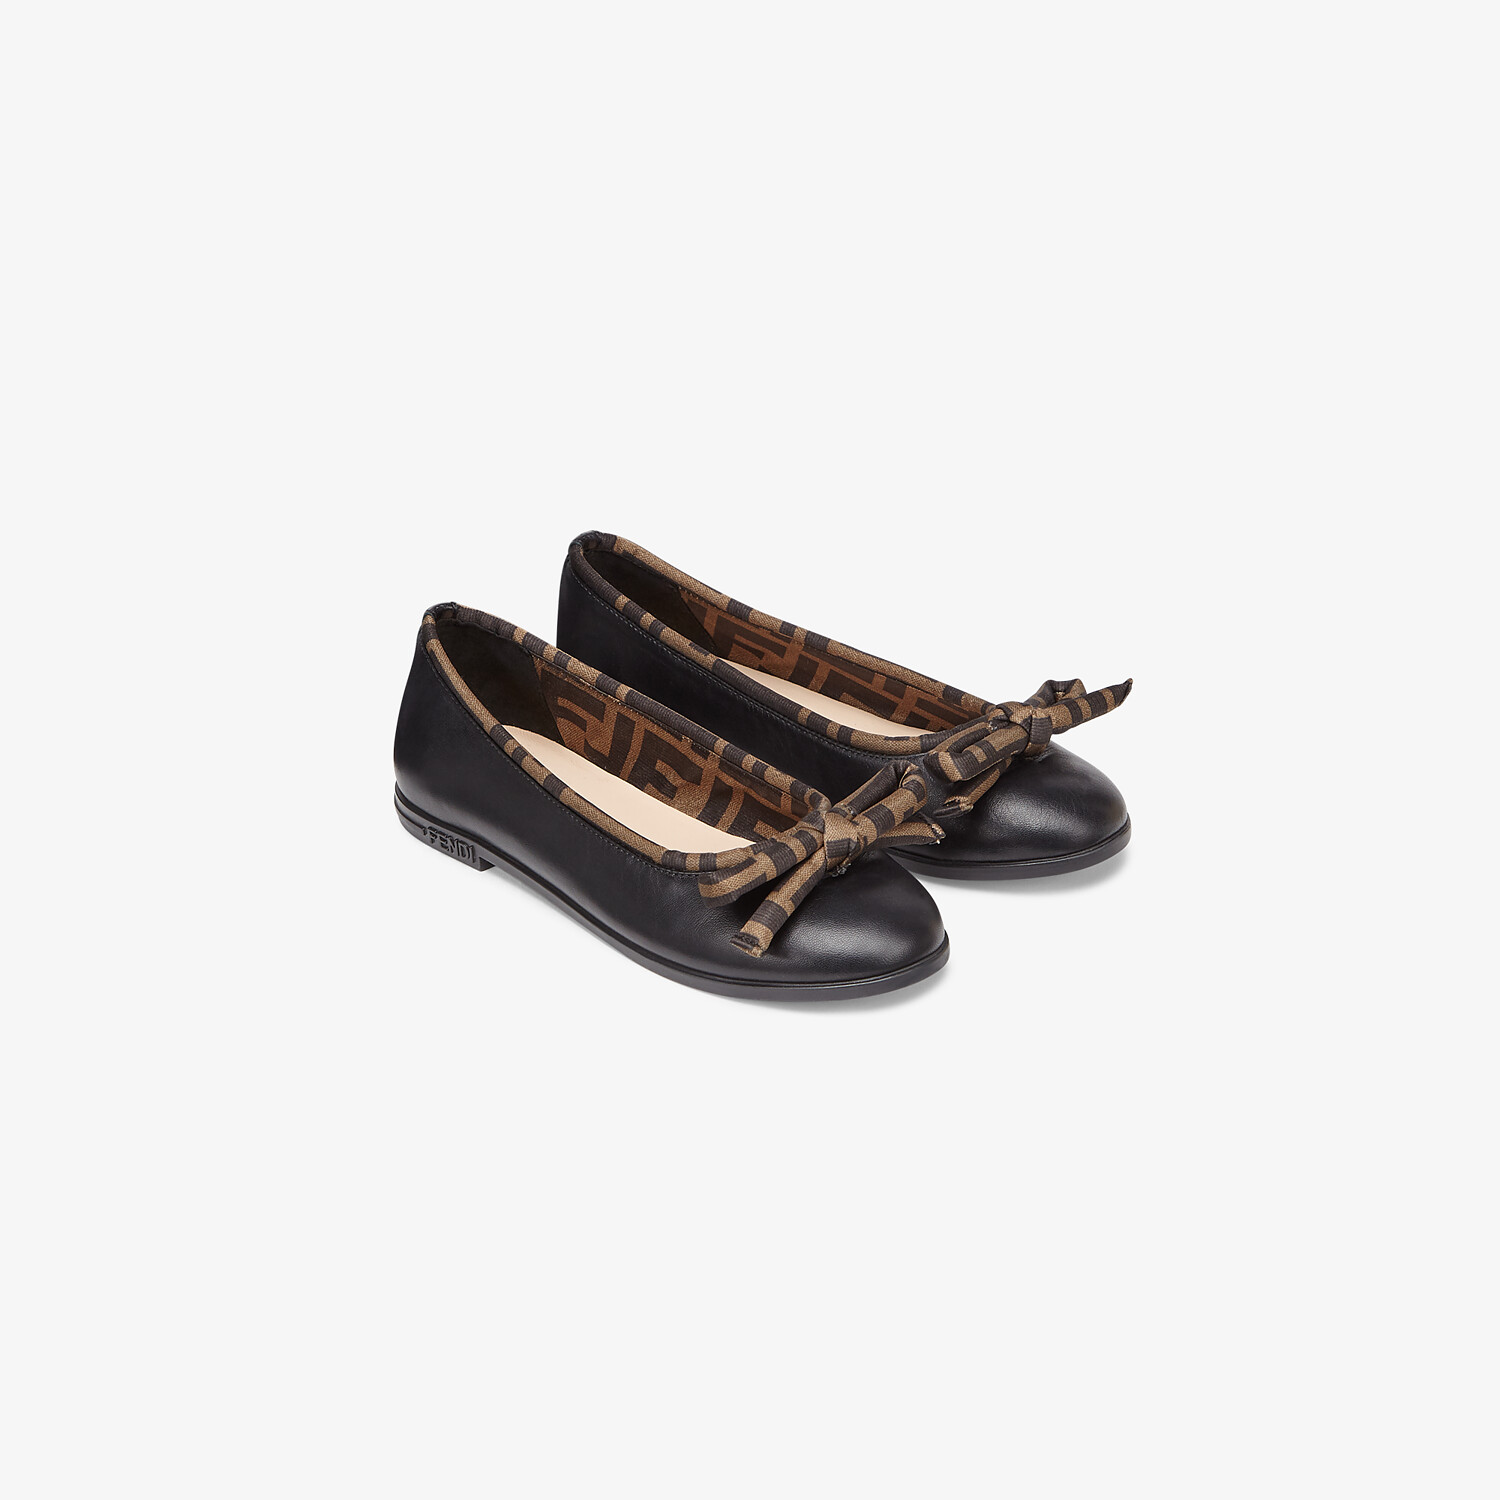 FENDI JUNIOR BALLERINAS - Black leather ballerinas with a touch of FF logo - view 2 detail